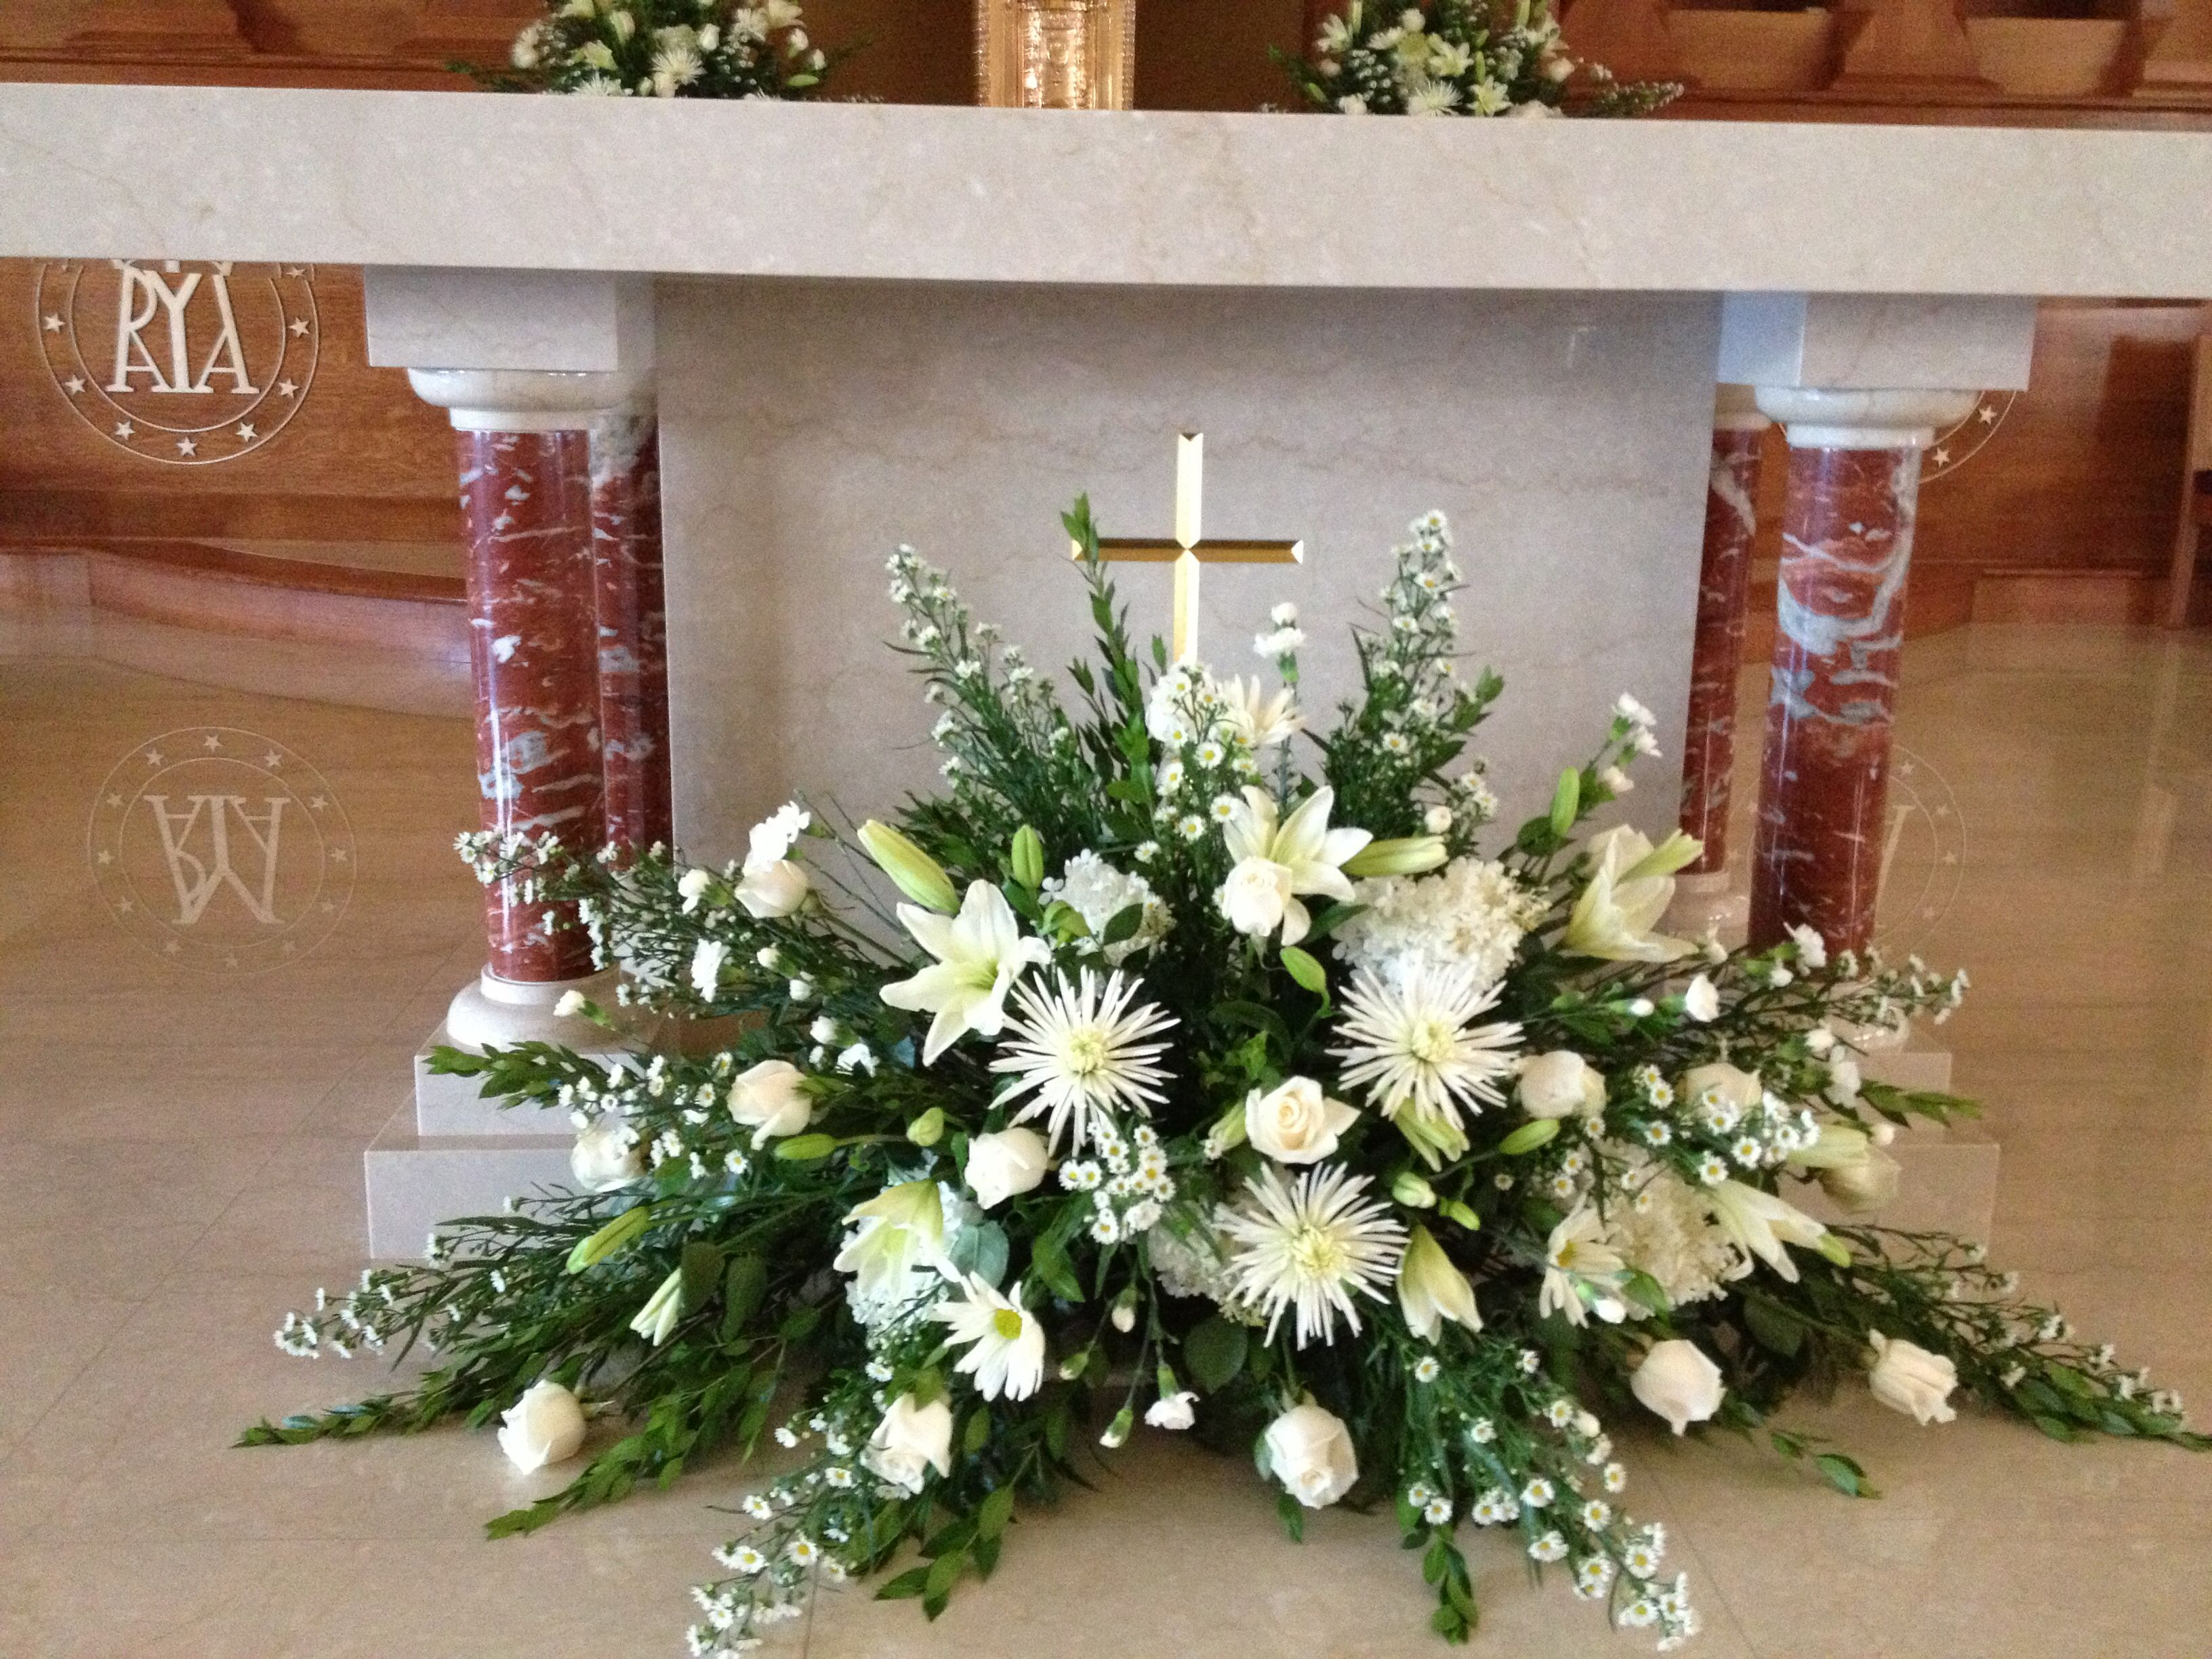 Church arrangement floral arrangements pinterest churches church arrangement izmirmasajfo